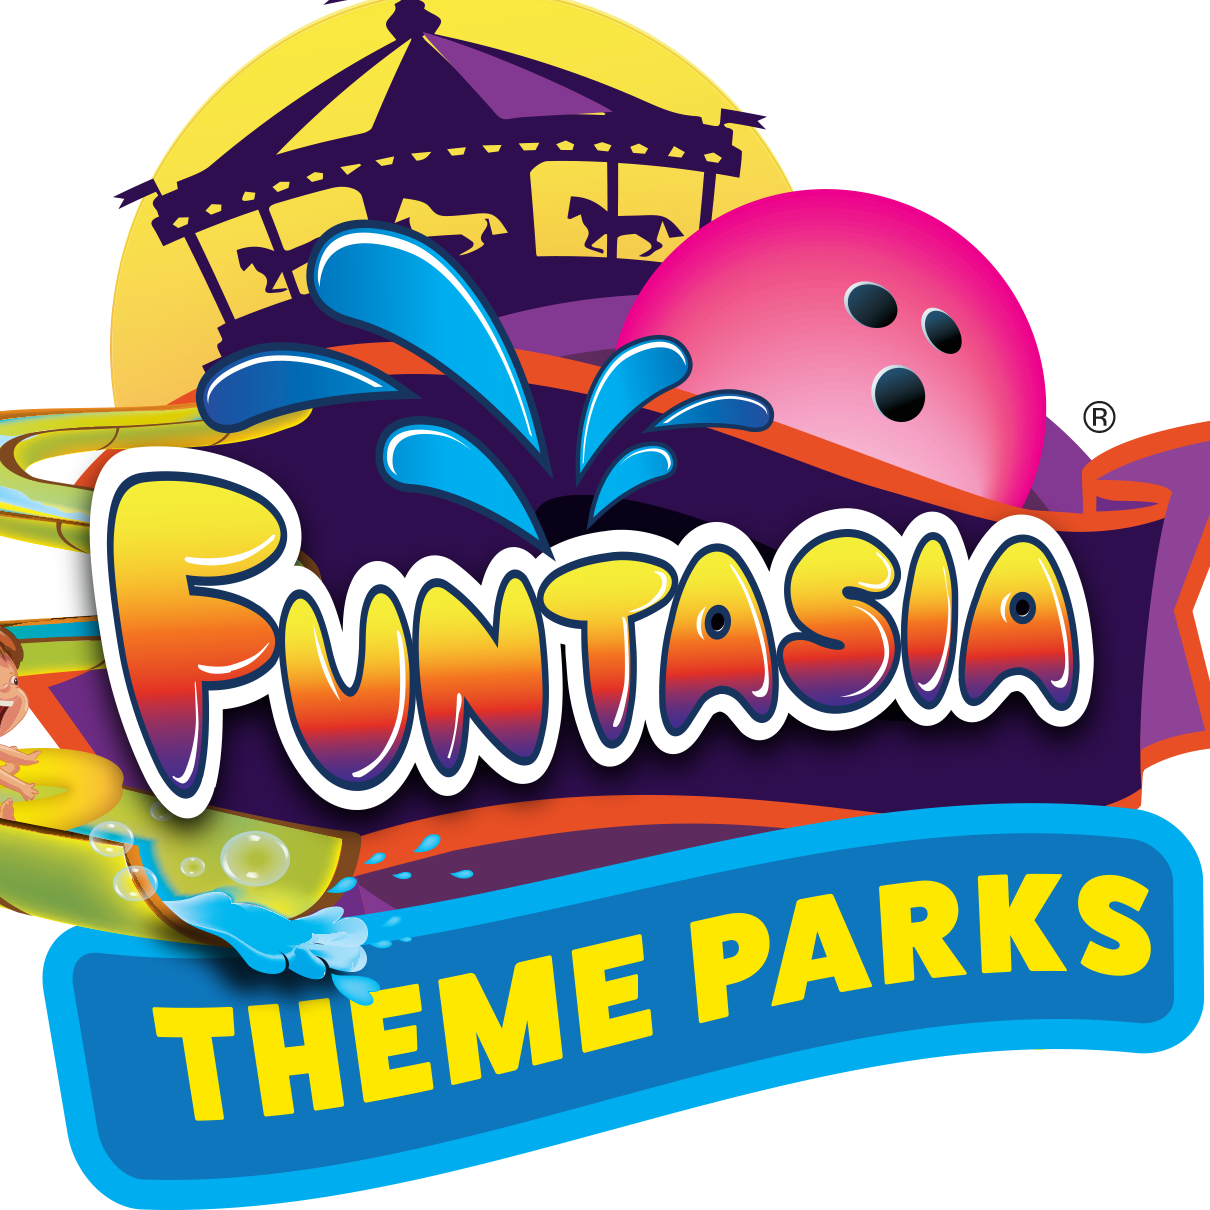 Funtasia Waterpark logo